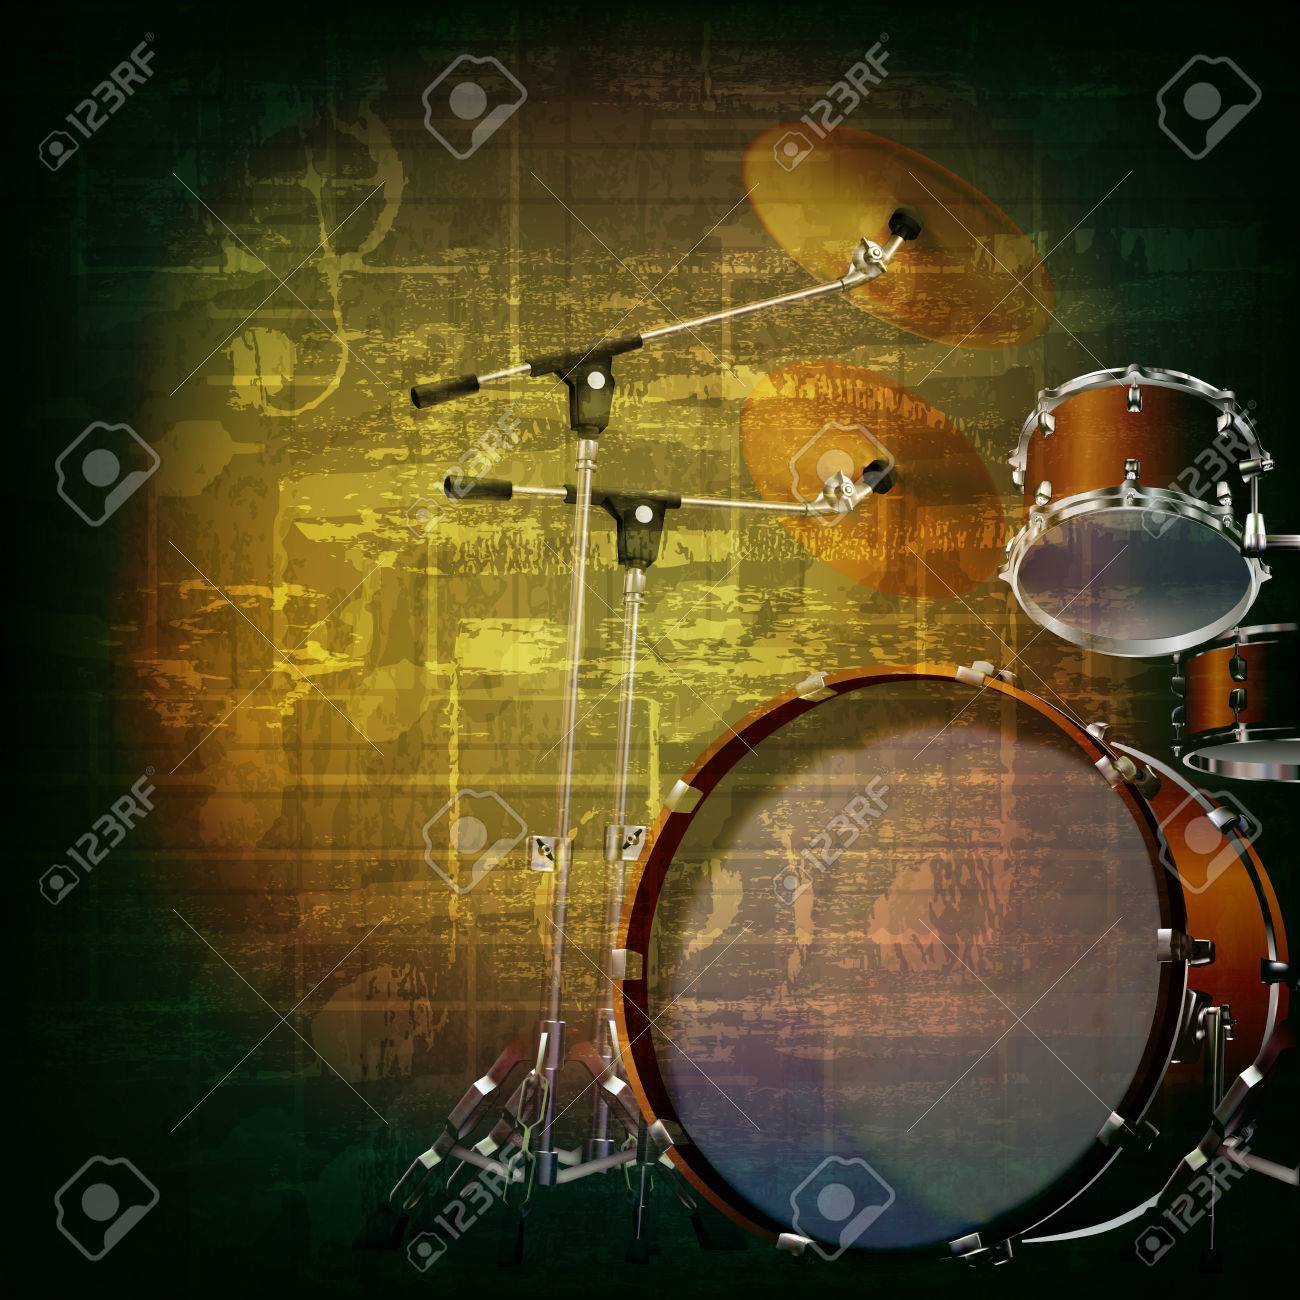 Abstract Green Grunge Music Background With Drum Kit Royalty Free ...